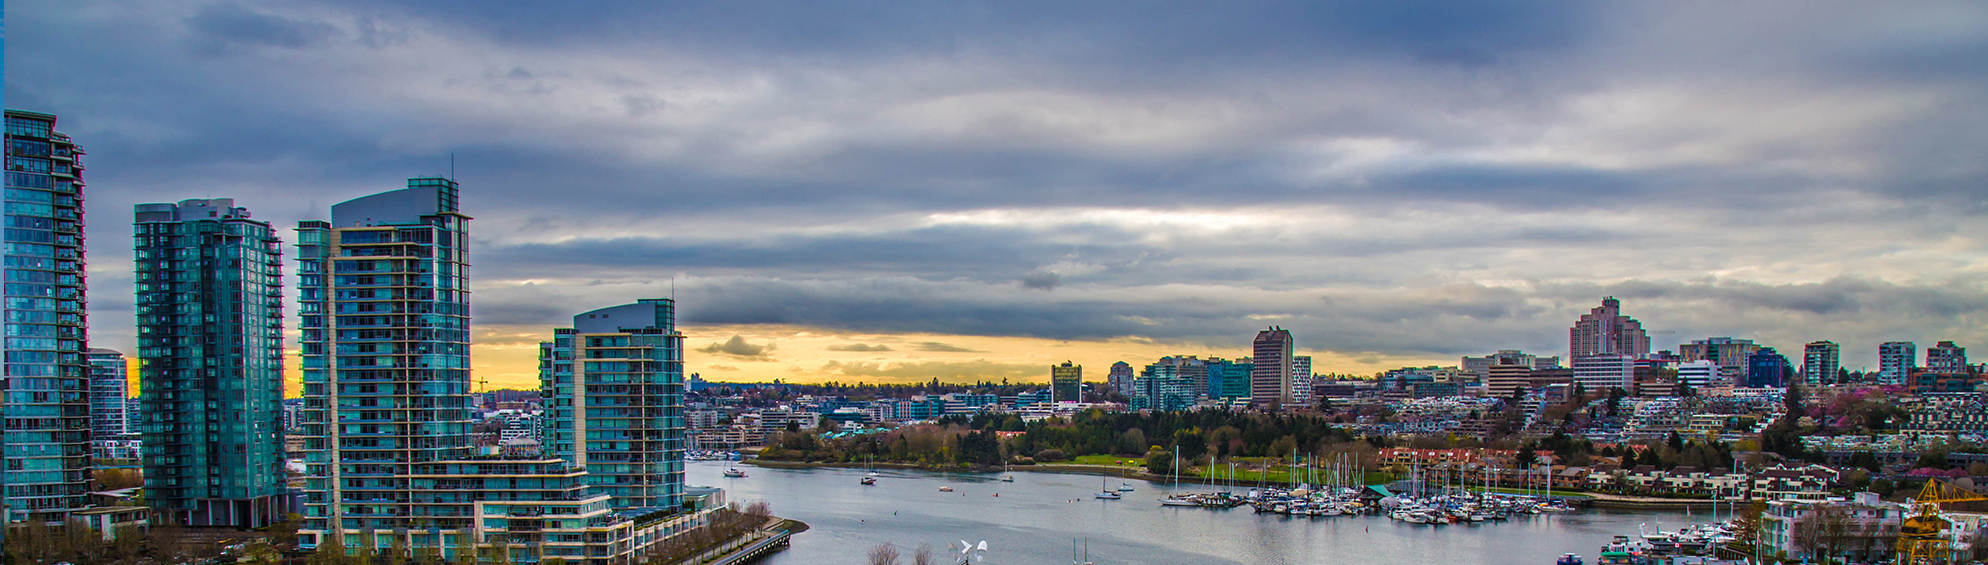 Business & Commercial Litigation, Solimano Law, Vancouver Lawyers, Vancouver city skyline